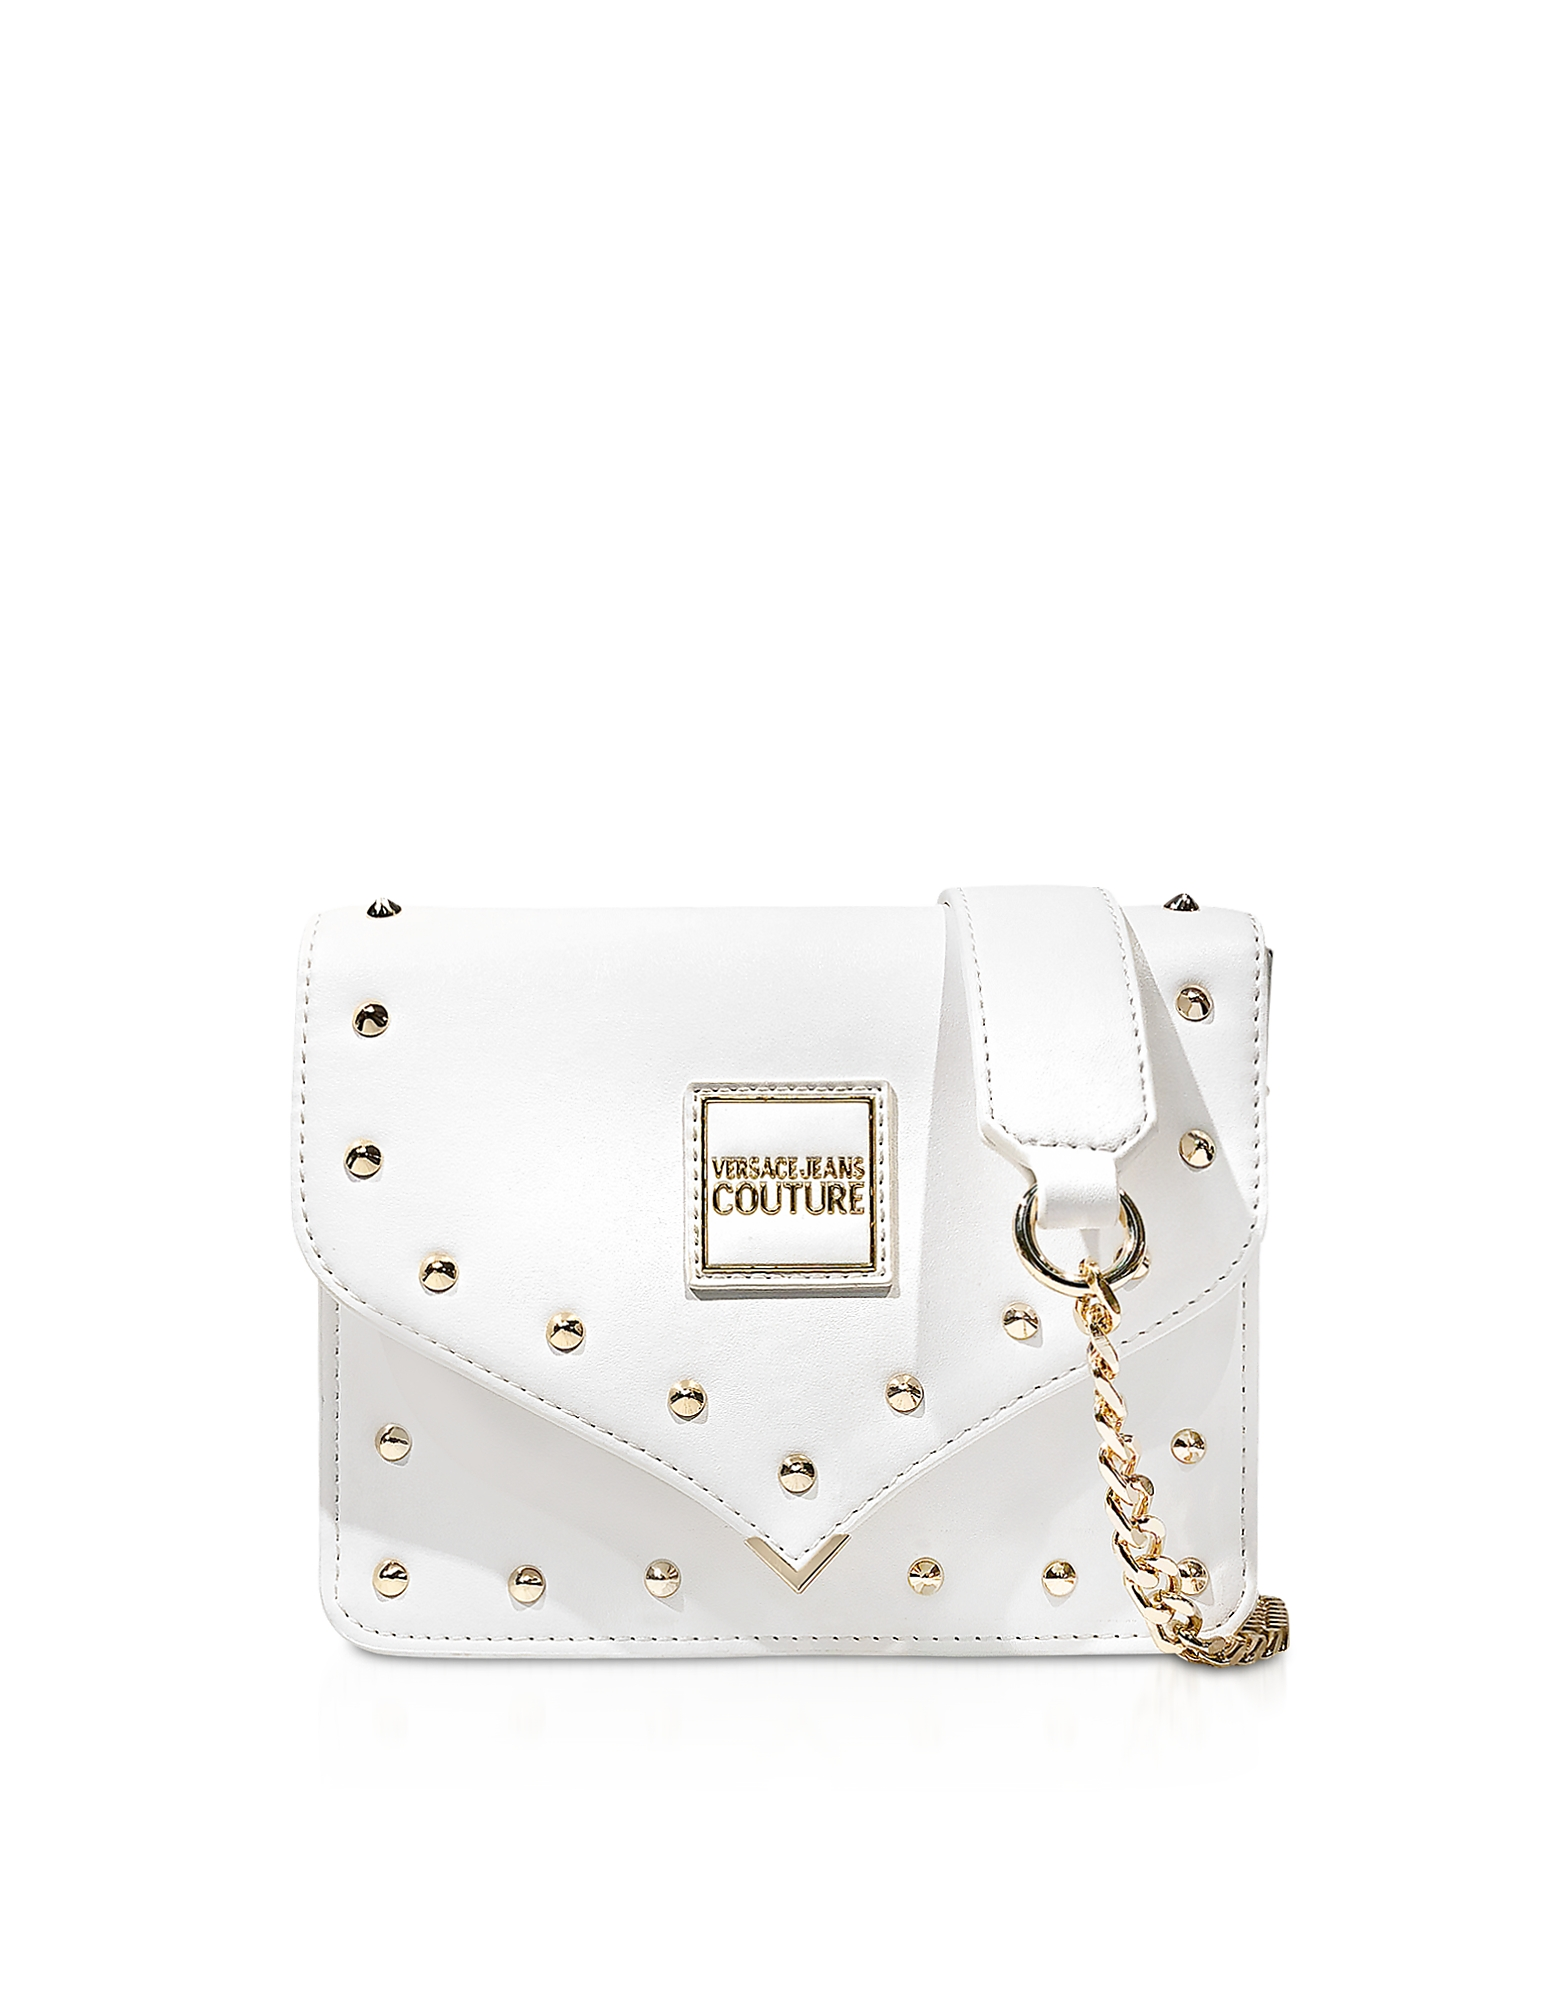 Versace Jeans Couture  Handbags Nappa Crossbody Bag w/Studs